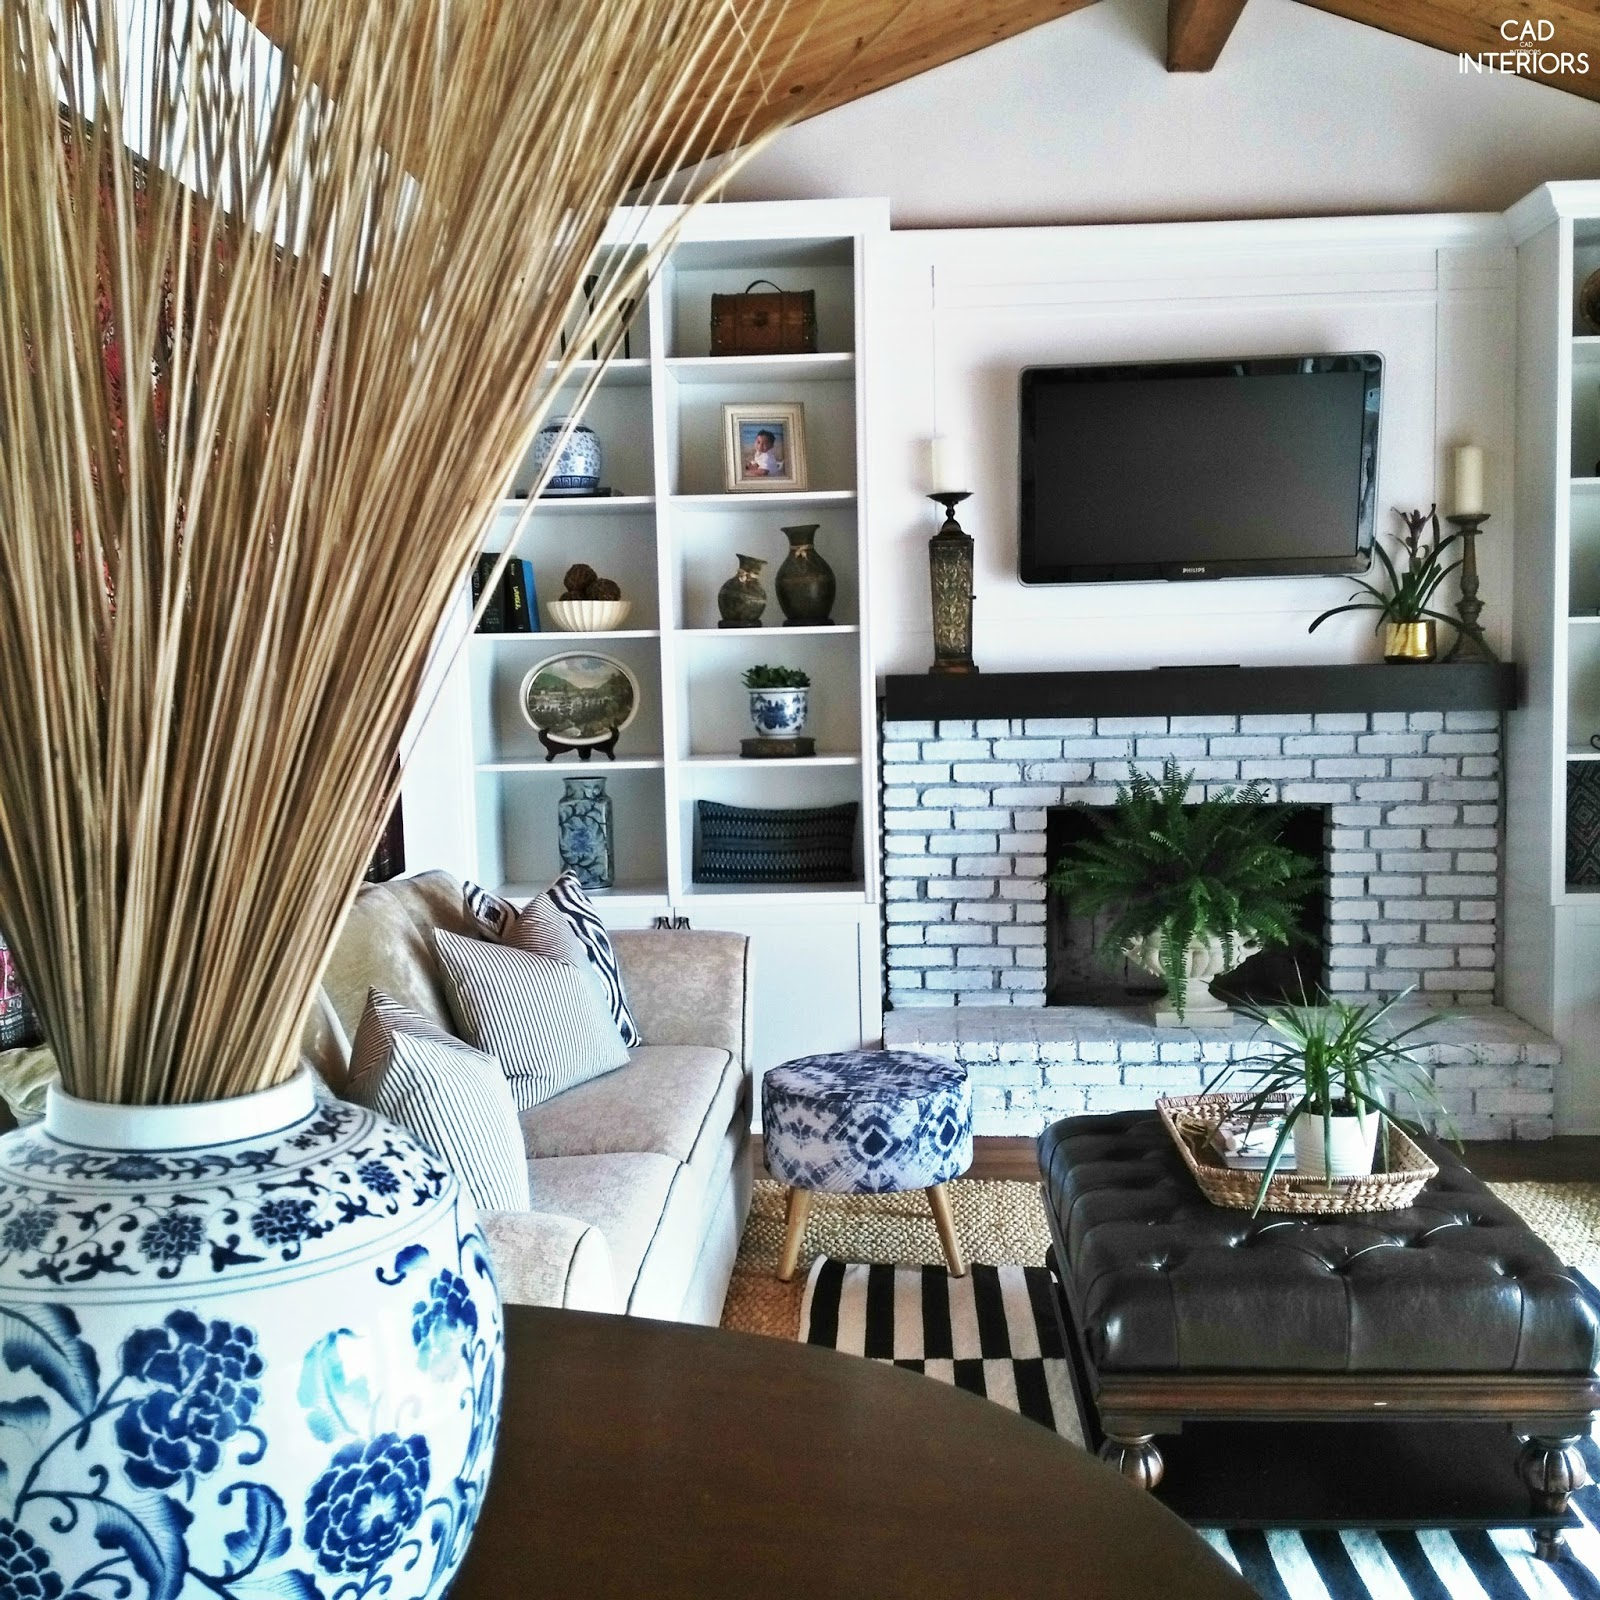 interior design decorating summer home tour blue white black modern transitional bohemian home decor organic natural textures plants styling